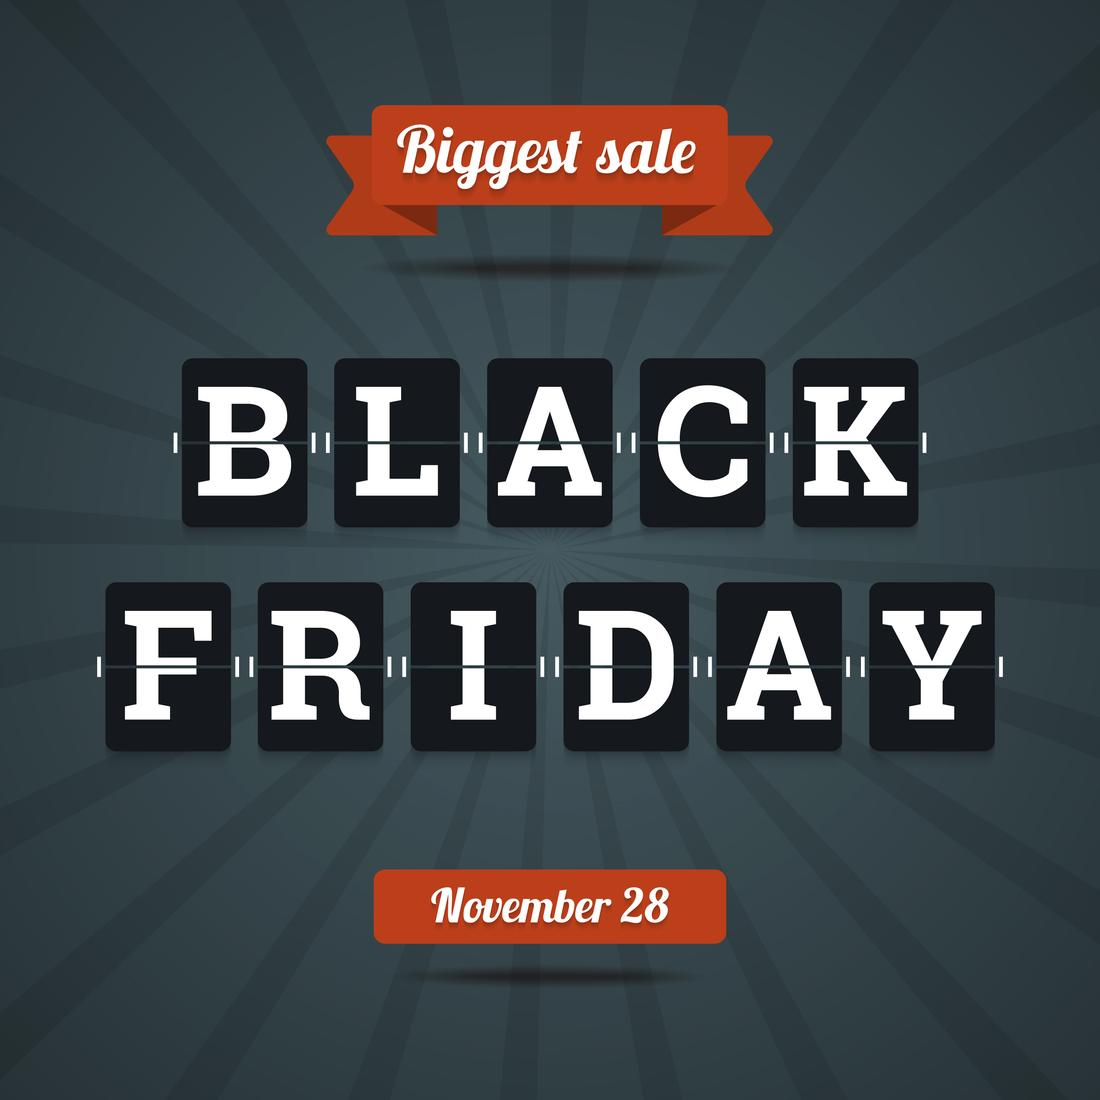 Black Friday Rabatt Black Friday Im App Store Die 10 Besten Ios Apps Mit Rabatt Mac